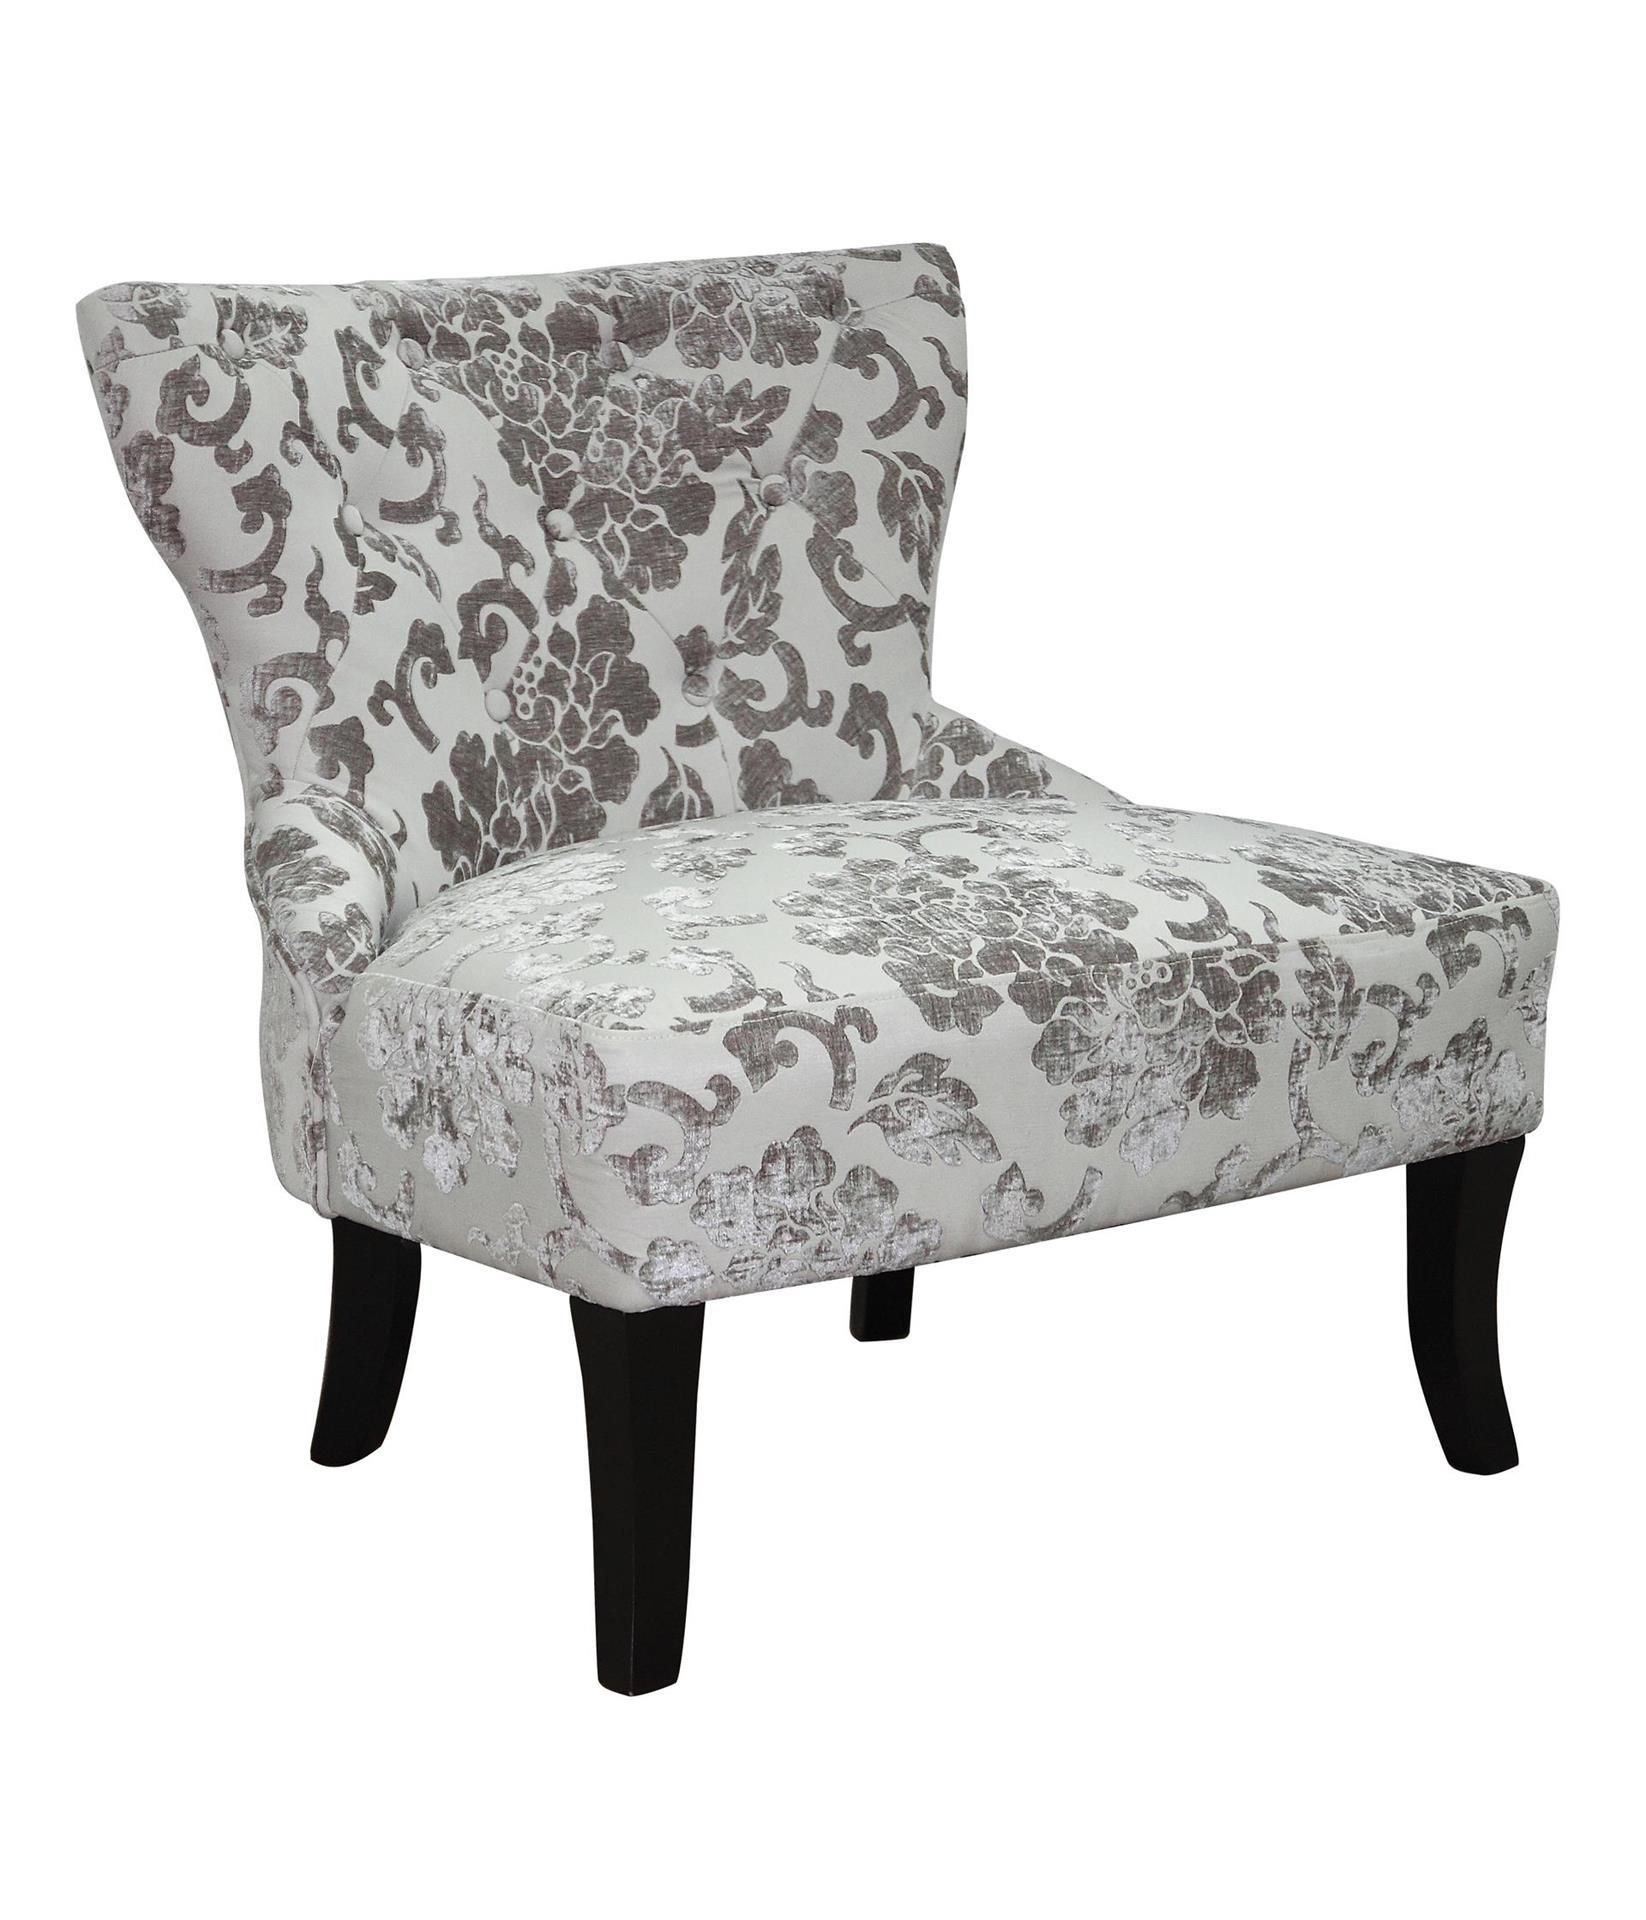 Pin by freckleclutz on Furniture and things Small chair